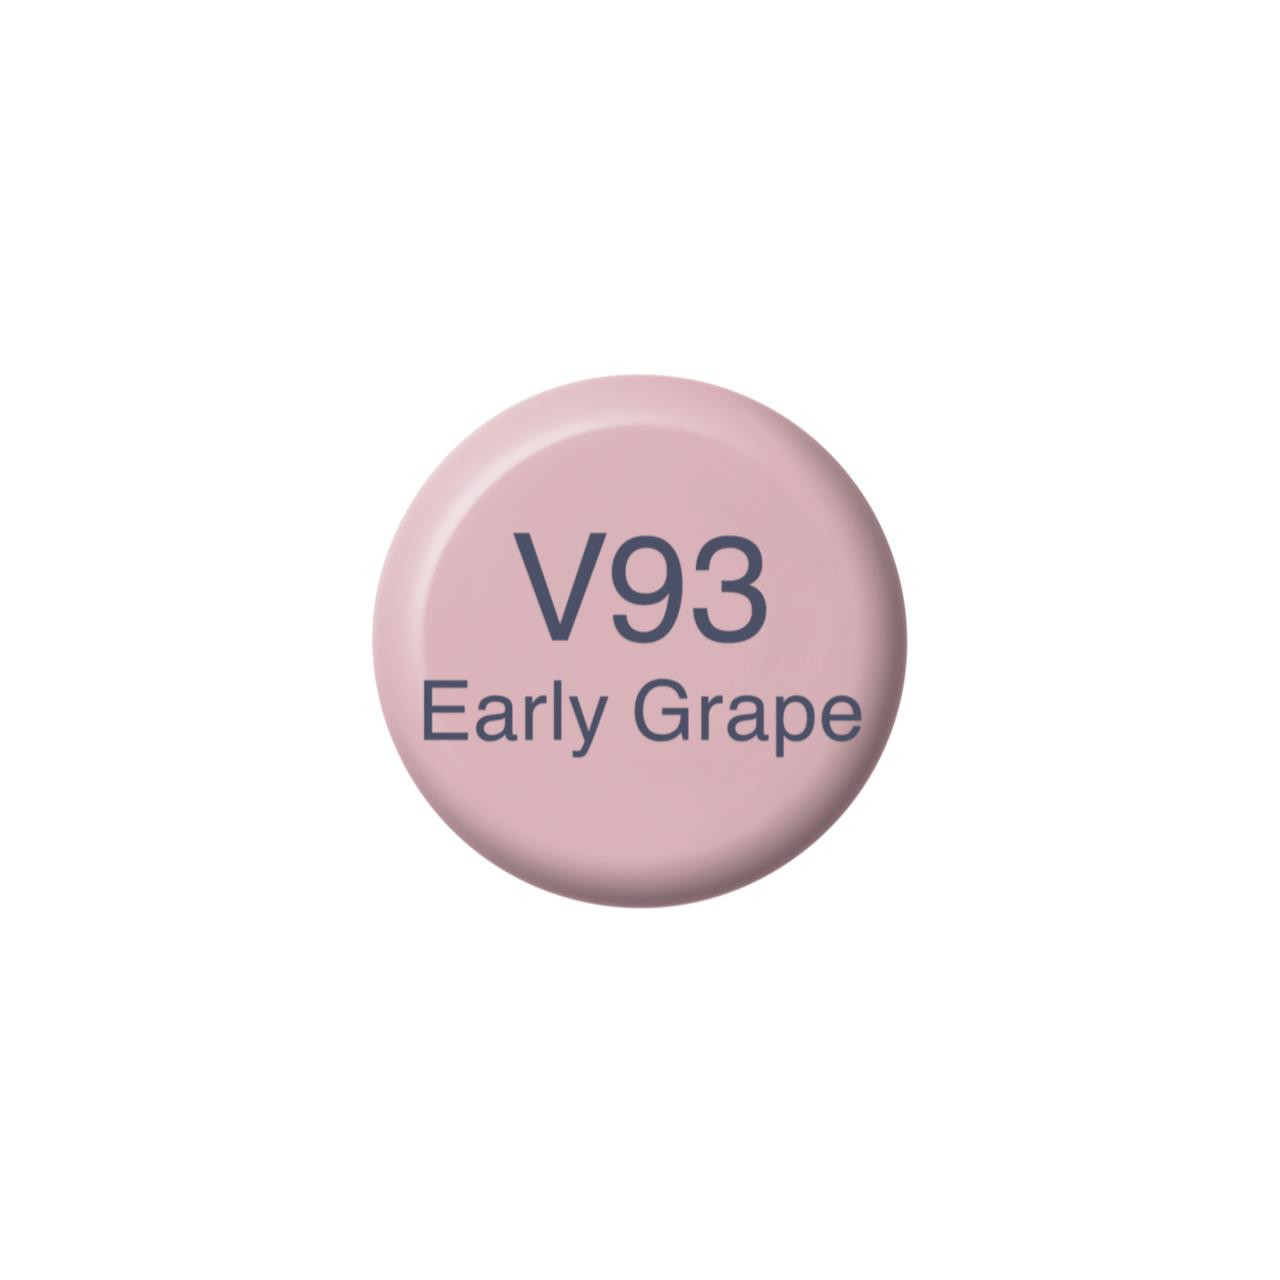 V93 Early Grape, Copic Ink - 4511338058107